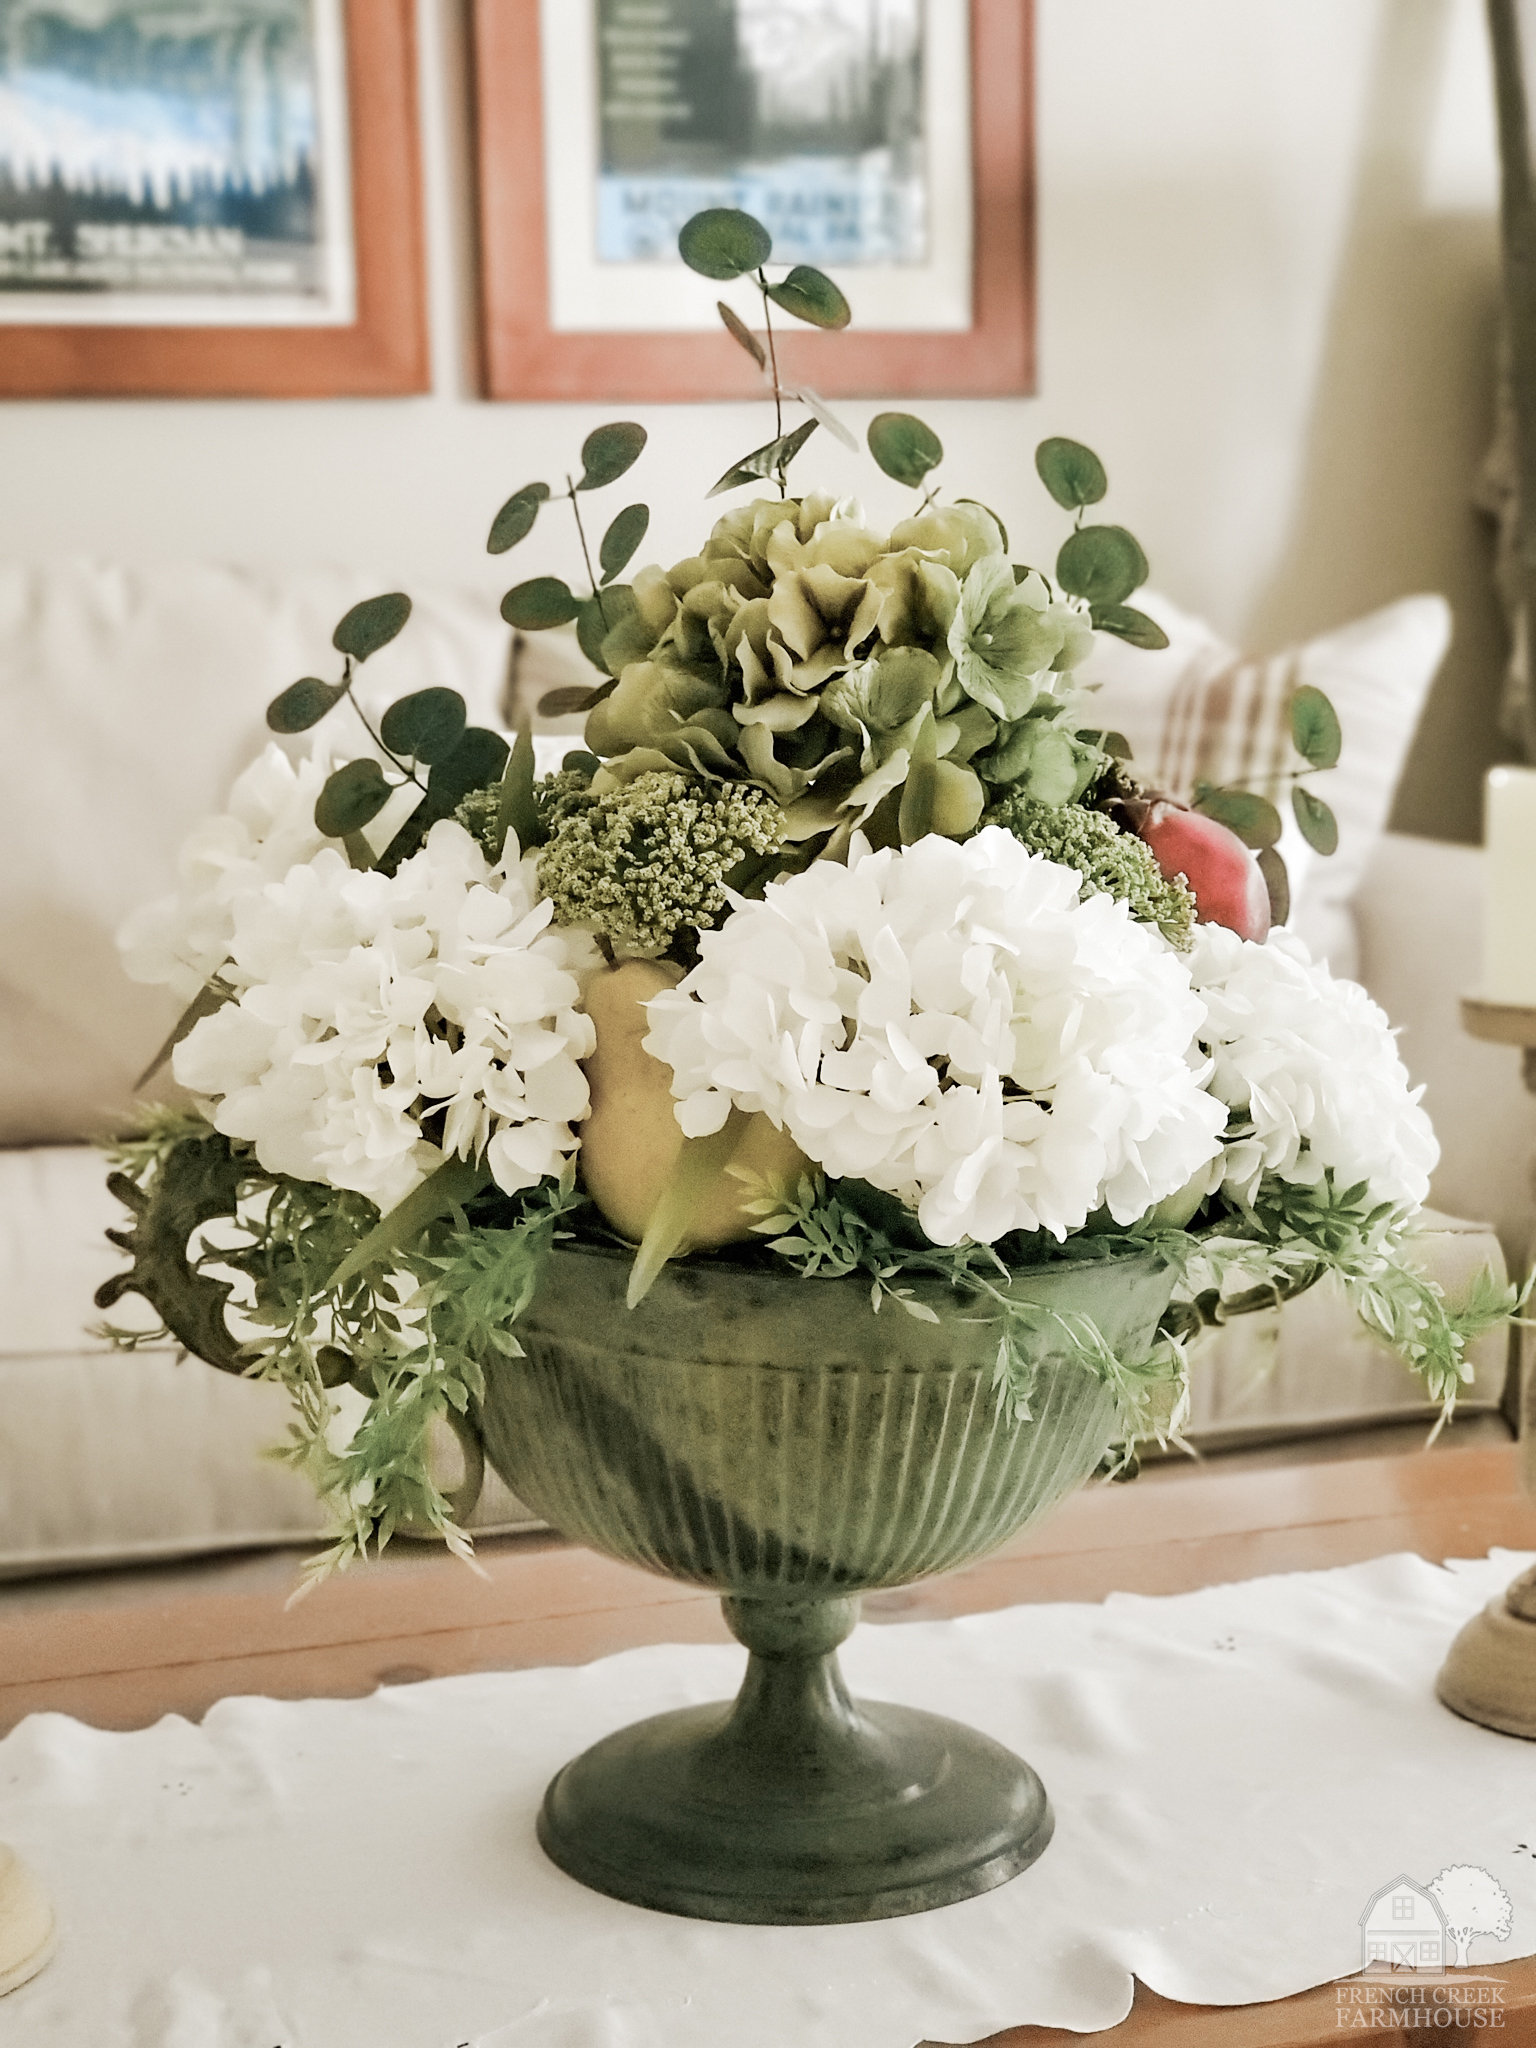 Fall florals and fruits are used to make a large centerpiece